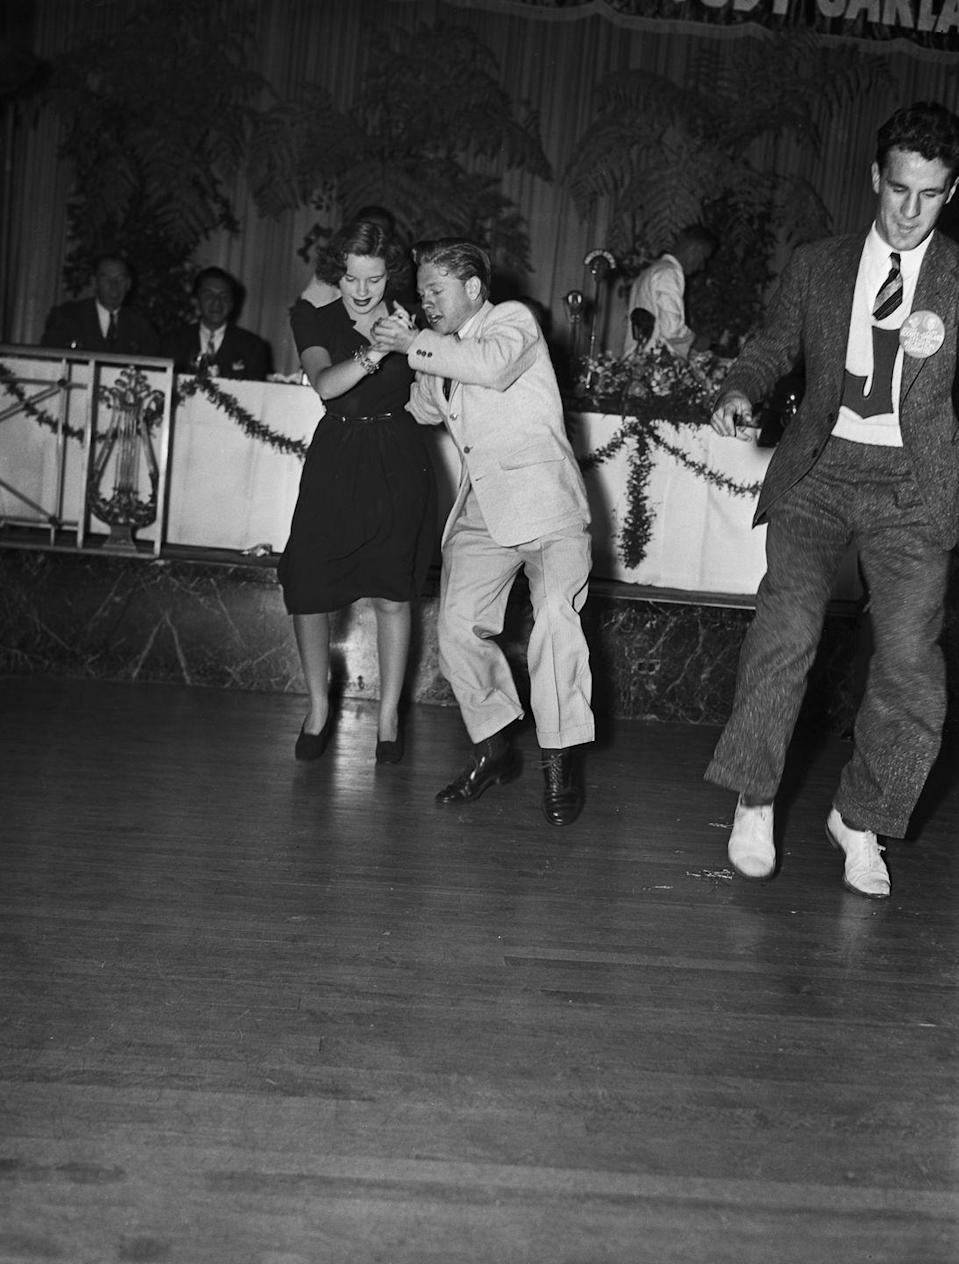 <p>Here, Judy and Mickey do the jitterbug, a popular dance of the time. </p>